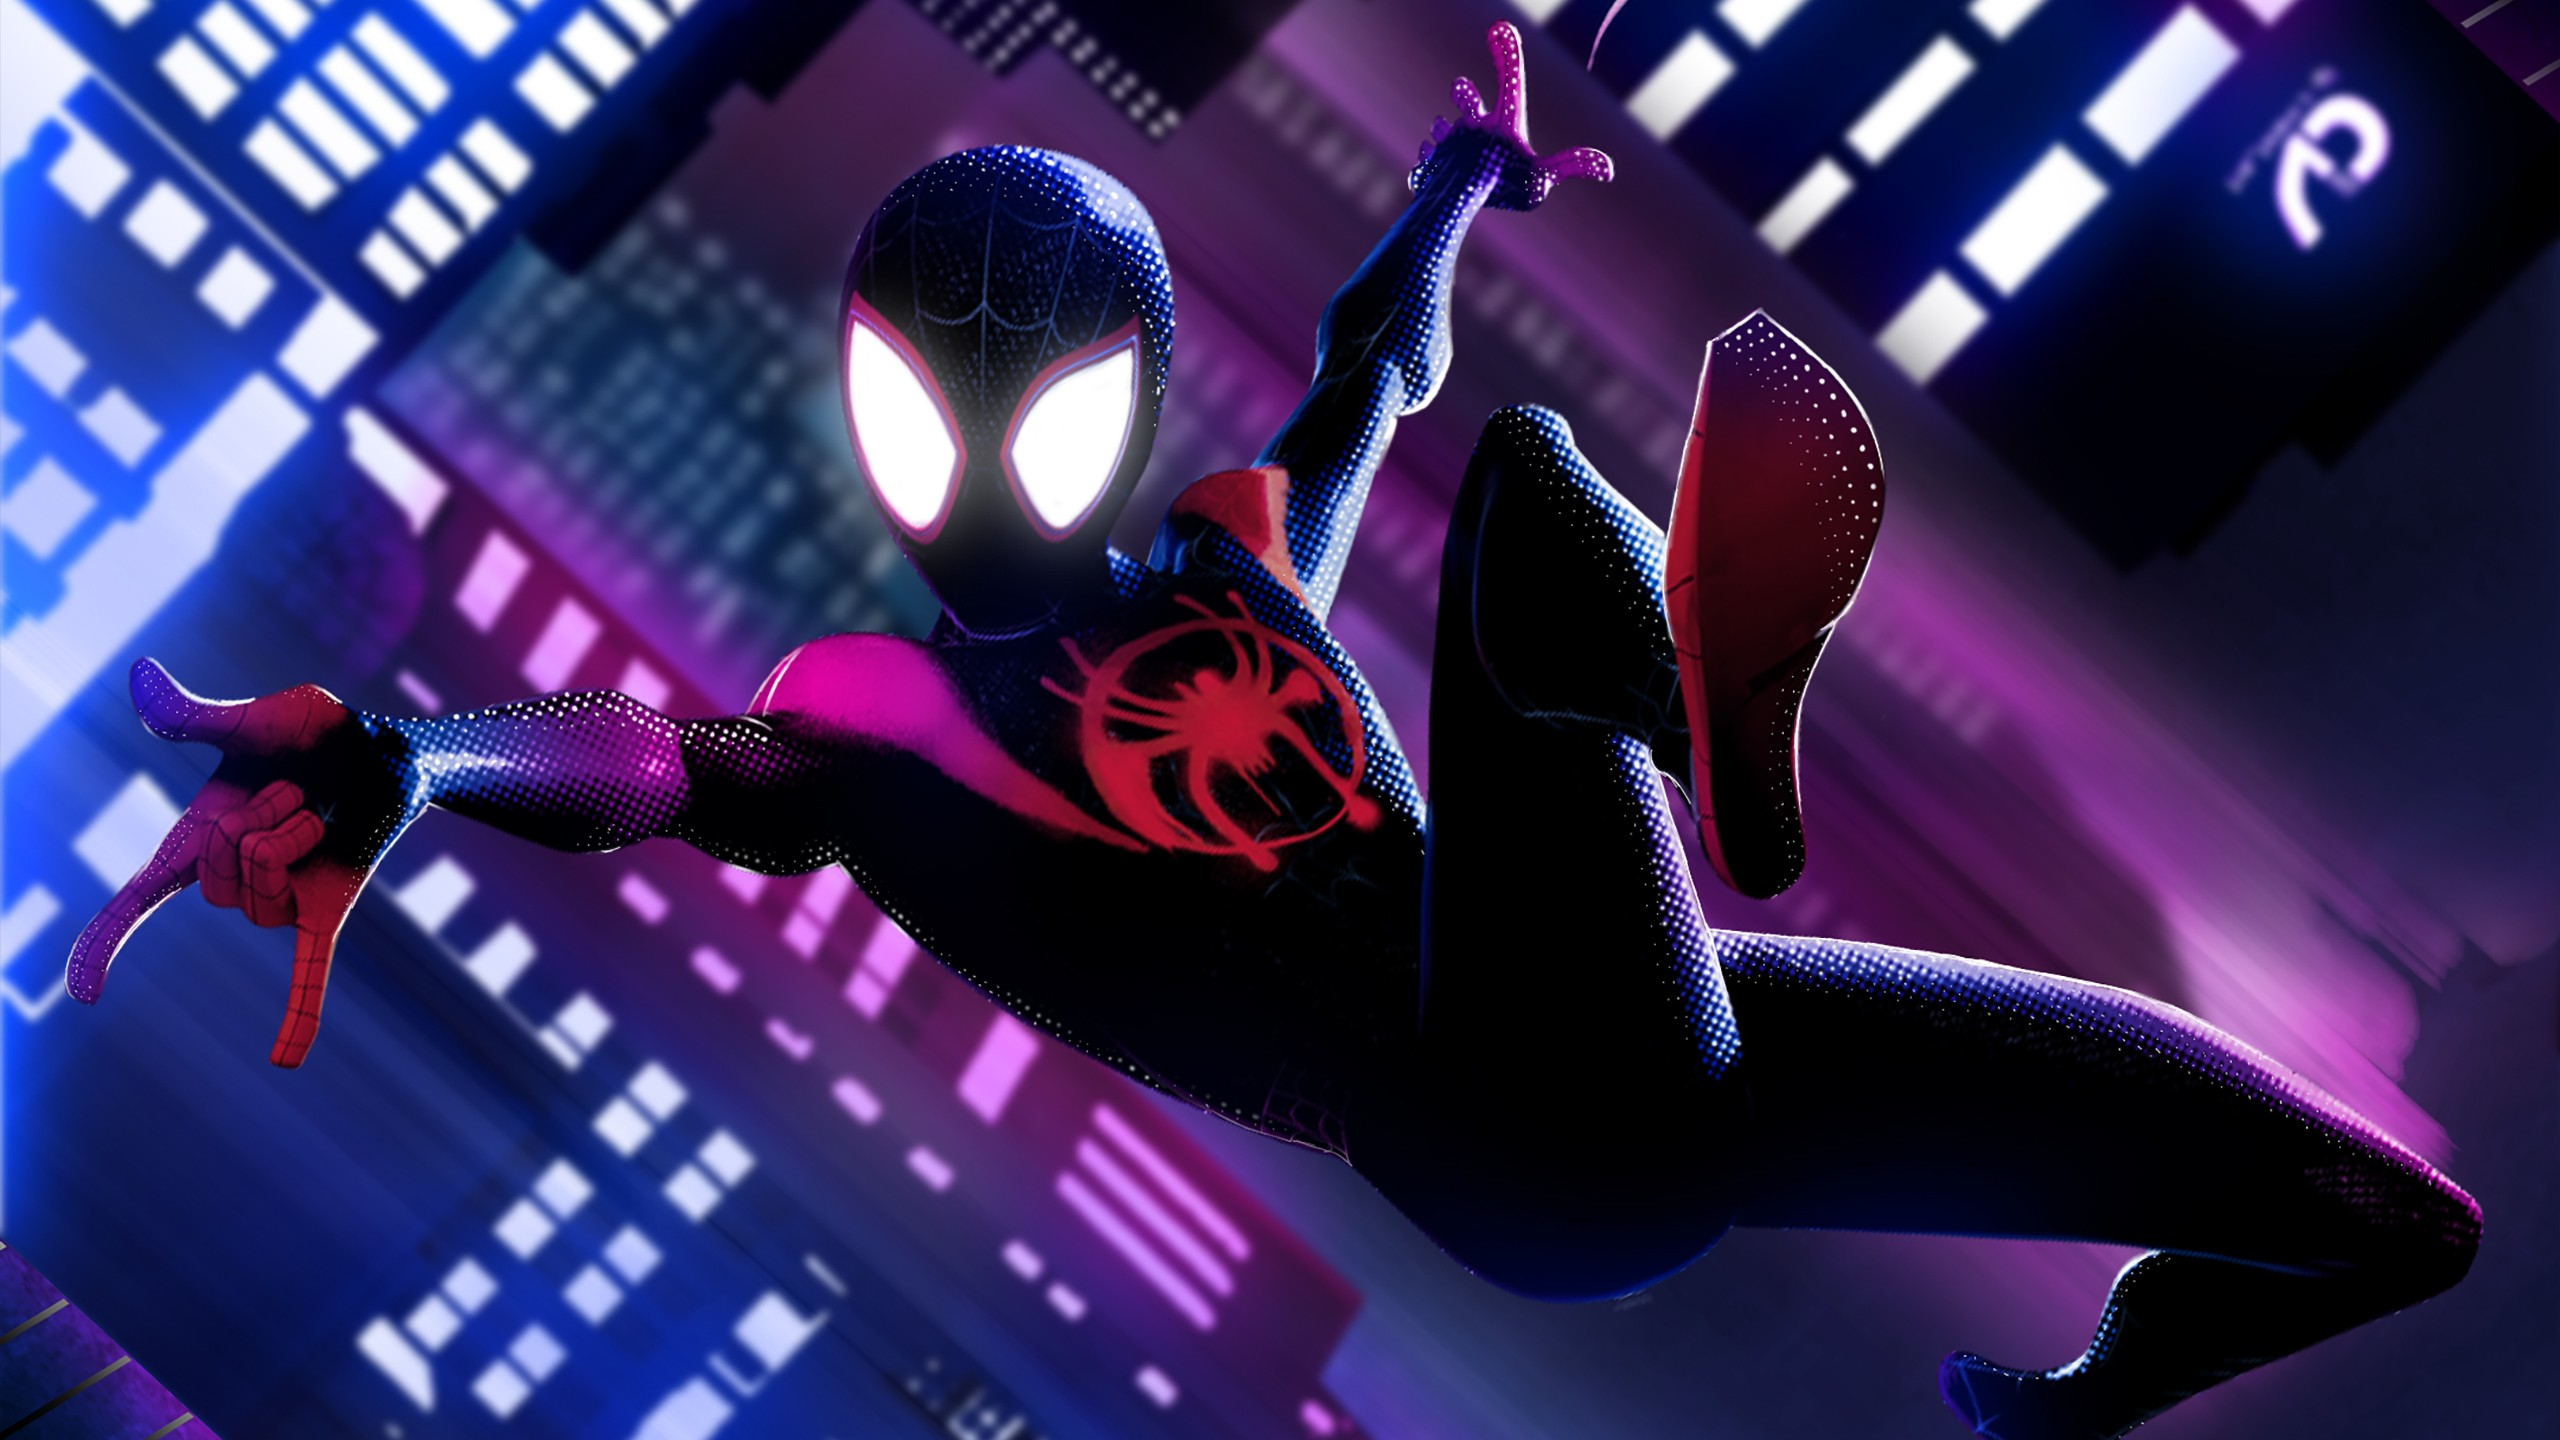 Nike Wallpaper Iphone 6s Miles Morales Spider Man Into The Spider Verse Wallpapers